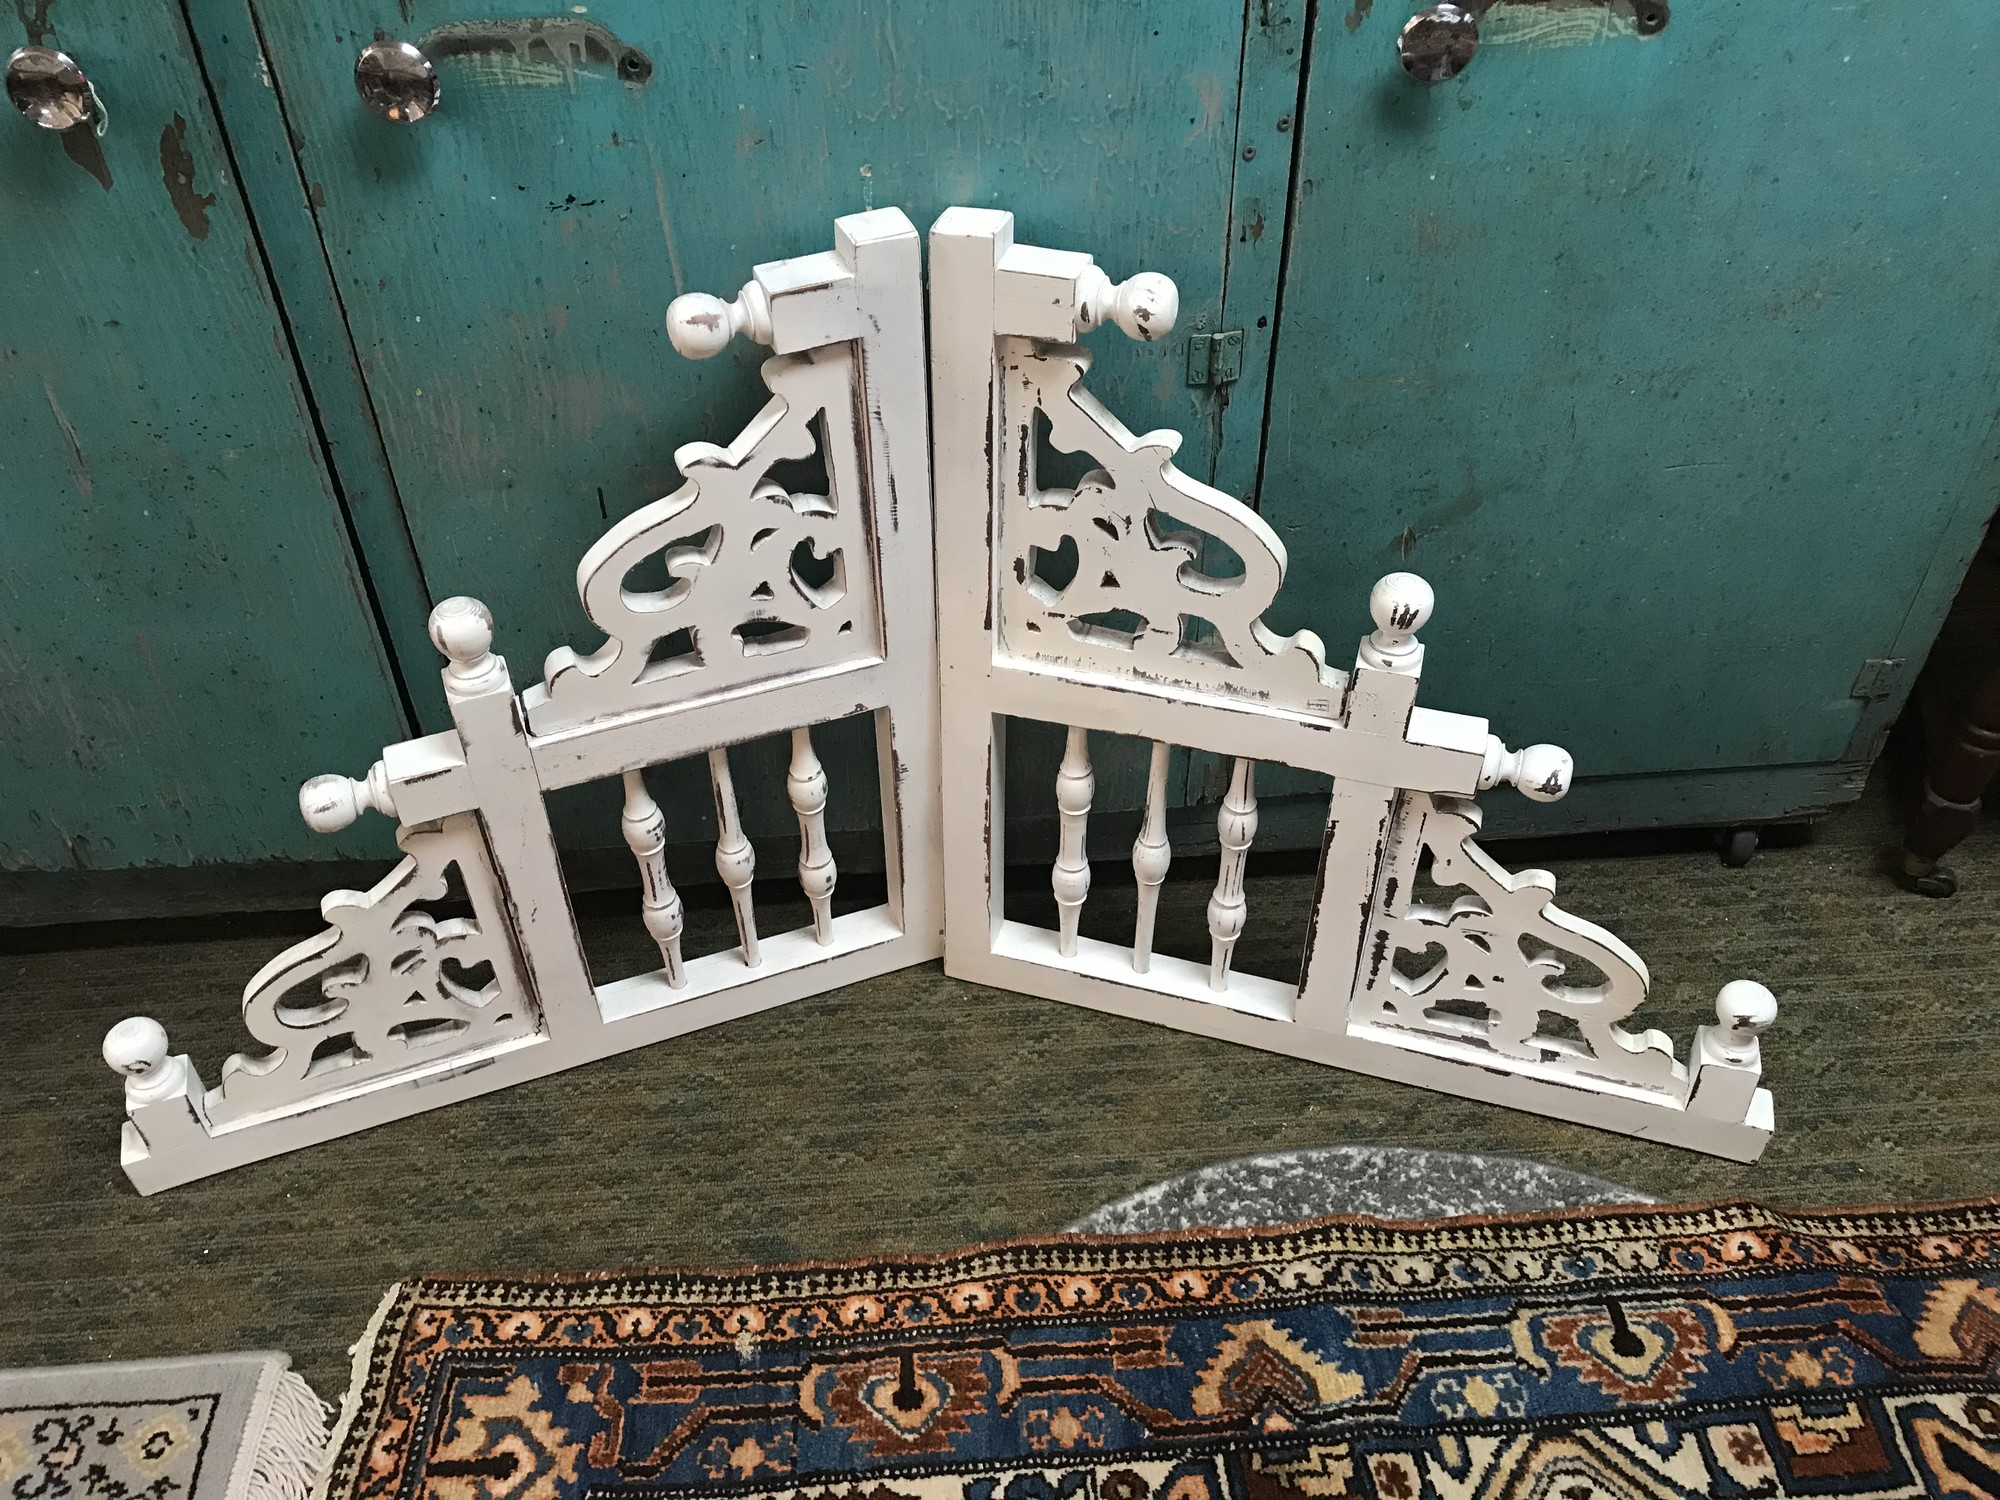 Shabby chic cottage style ornate white corbels.<br /> Measurements 27.5in x 27.5in